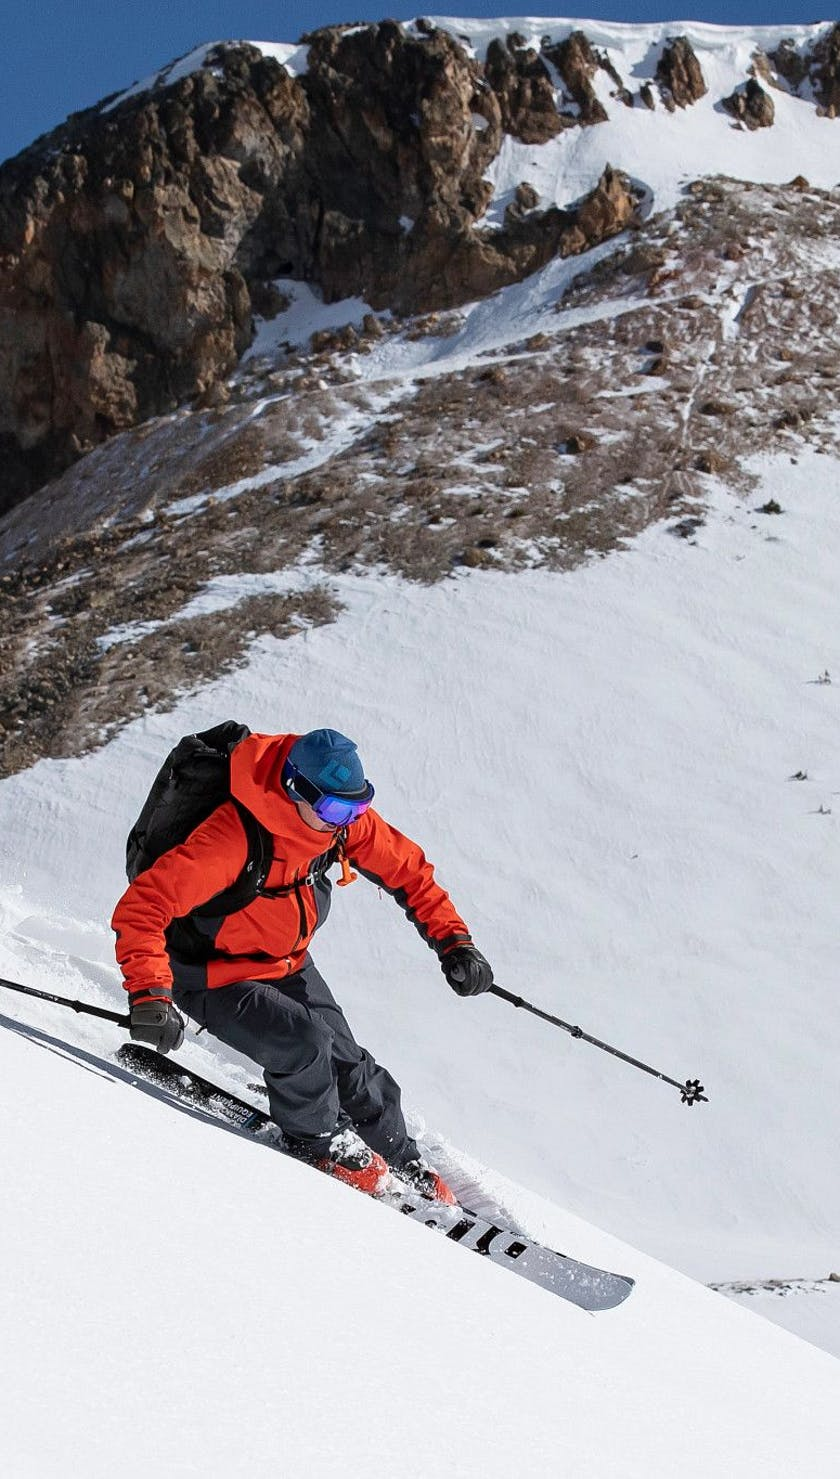 skier going into a turn on the Helio Carbon skis